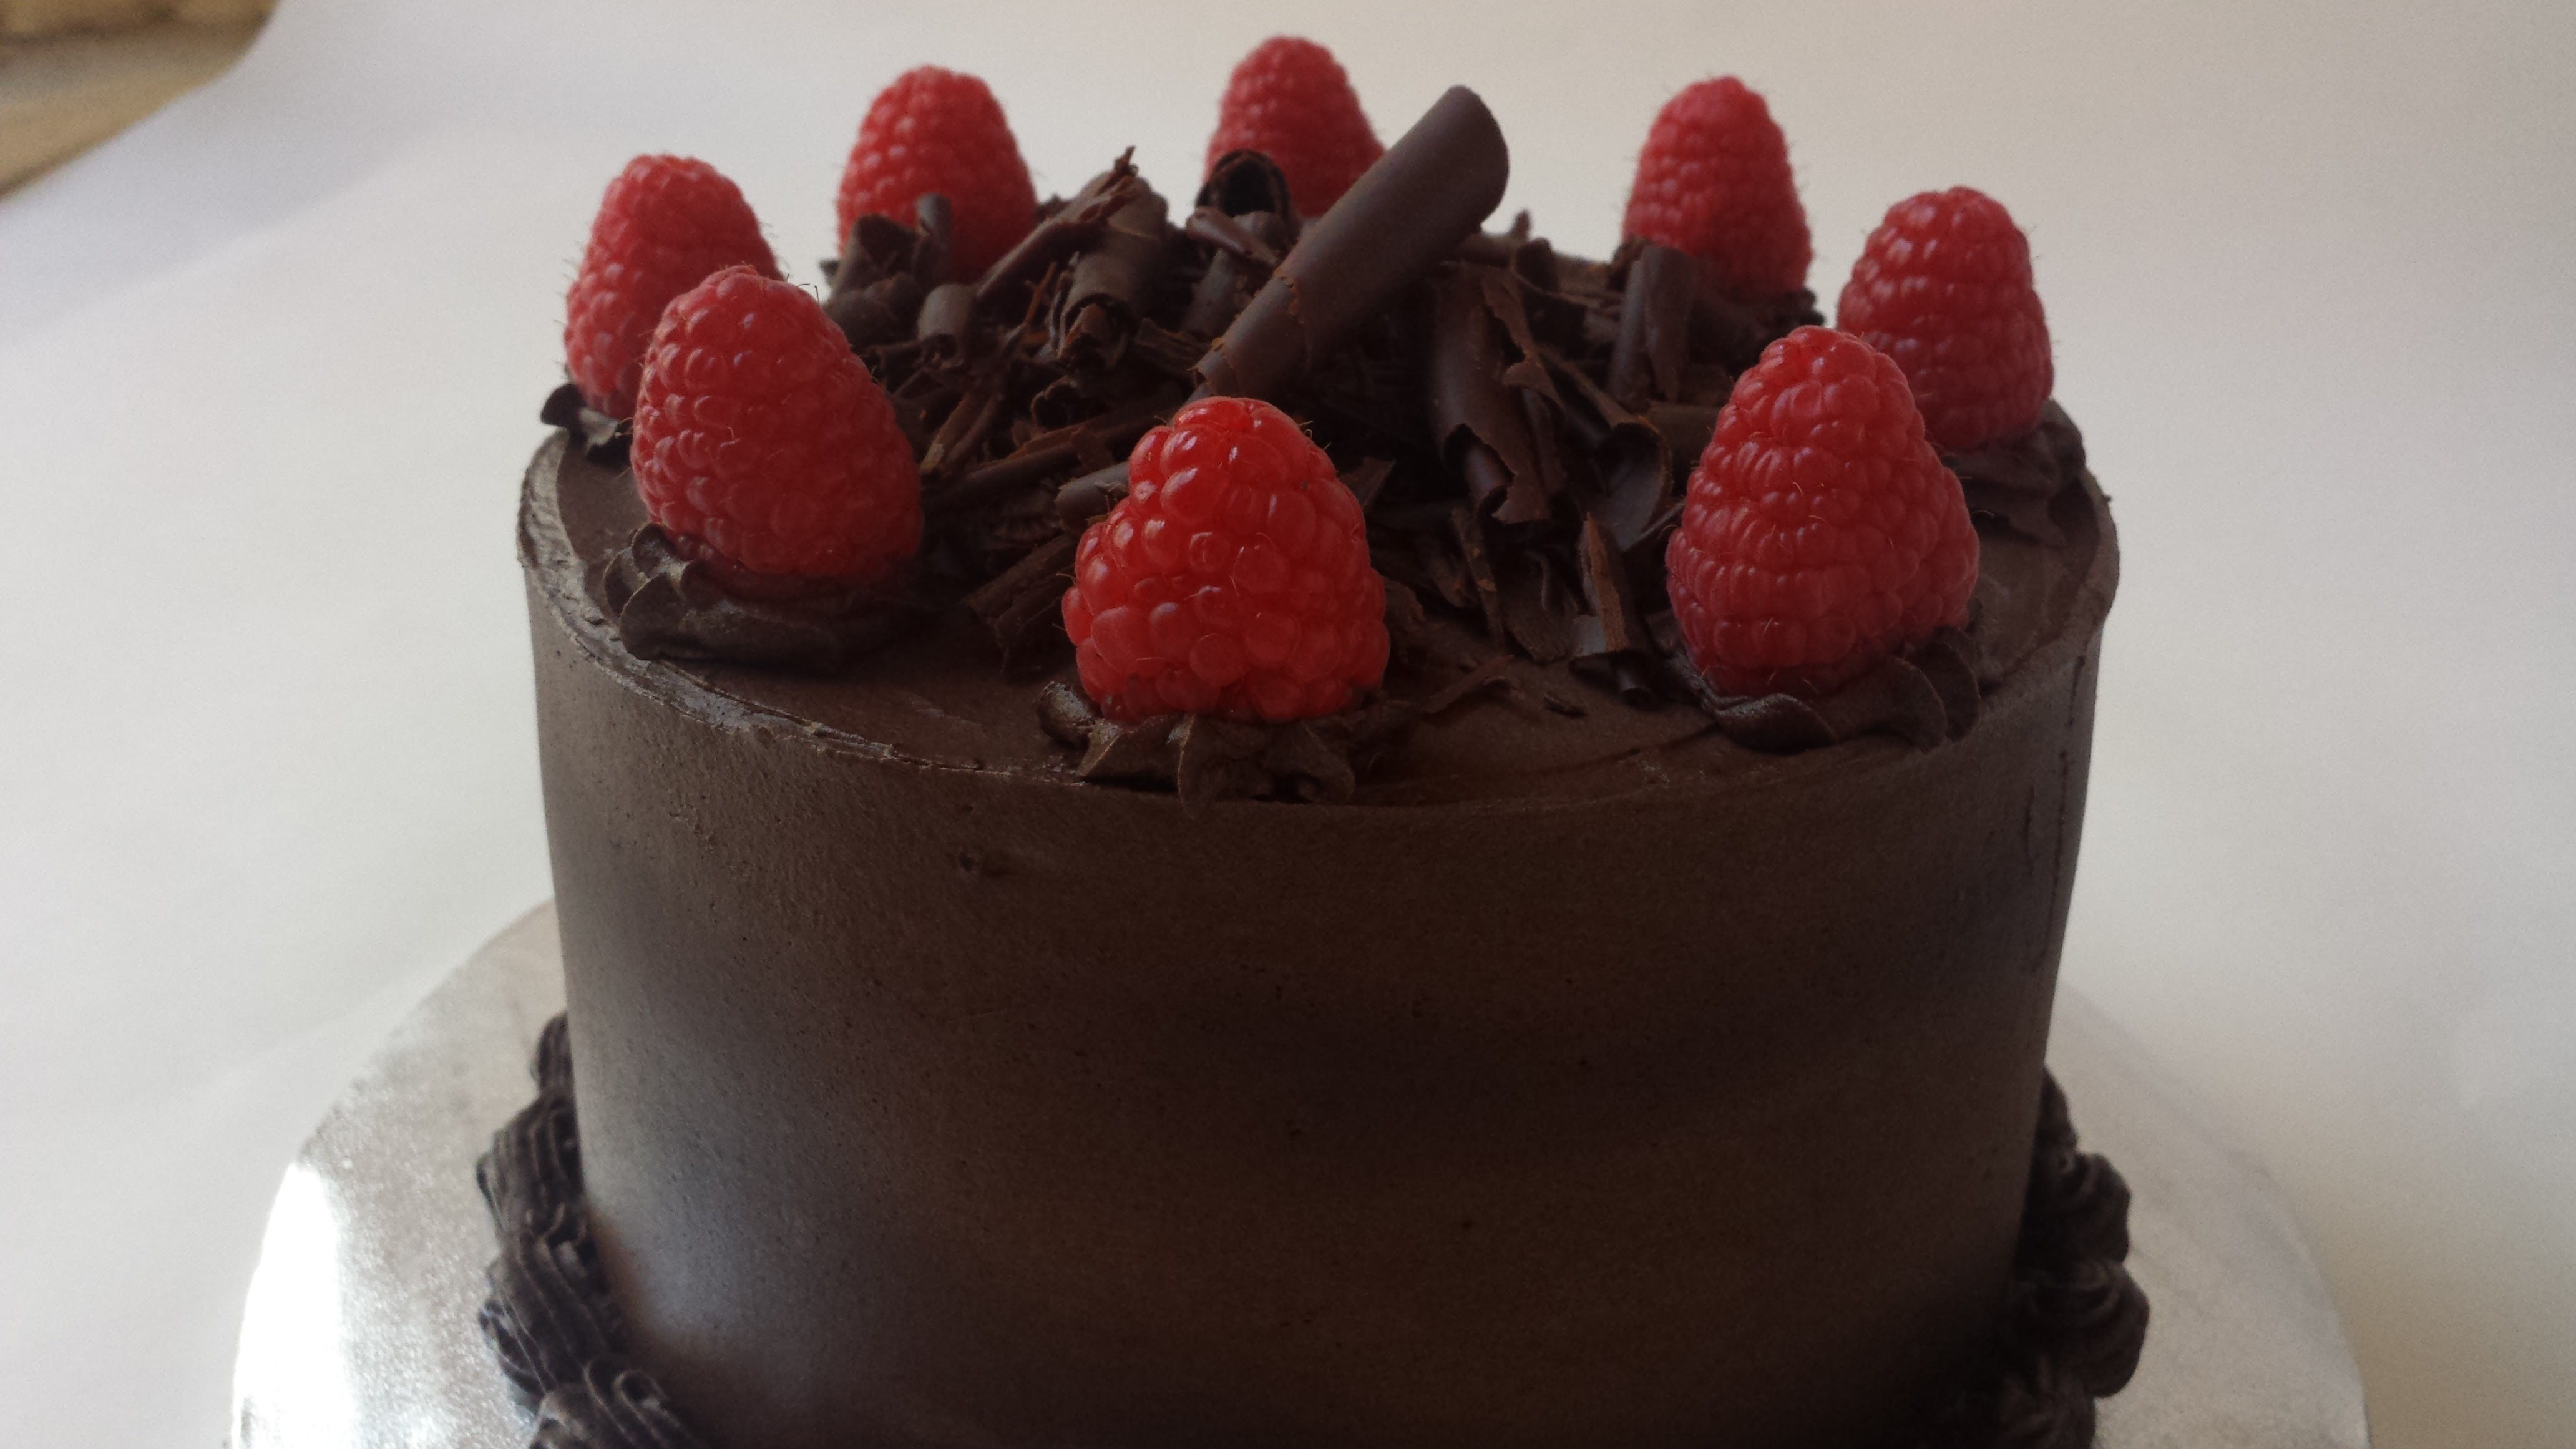 Dark chocolate birthday cake with dark chocolate buttercream topped with fresh raspberries and chocolate curls.